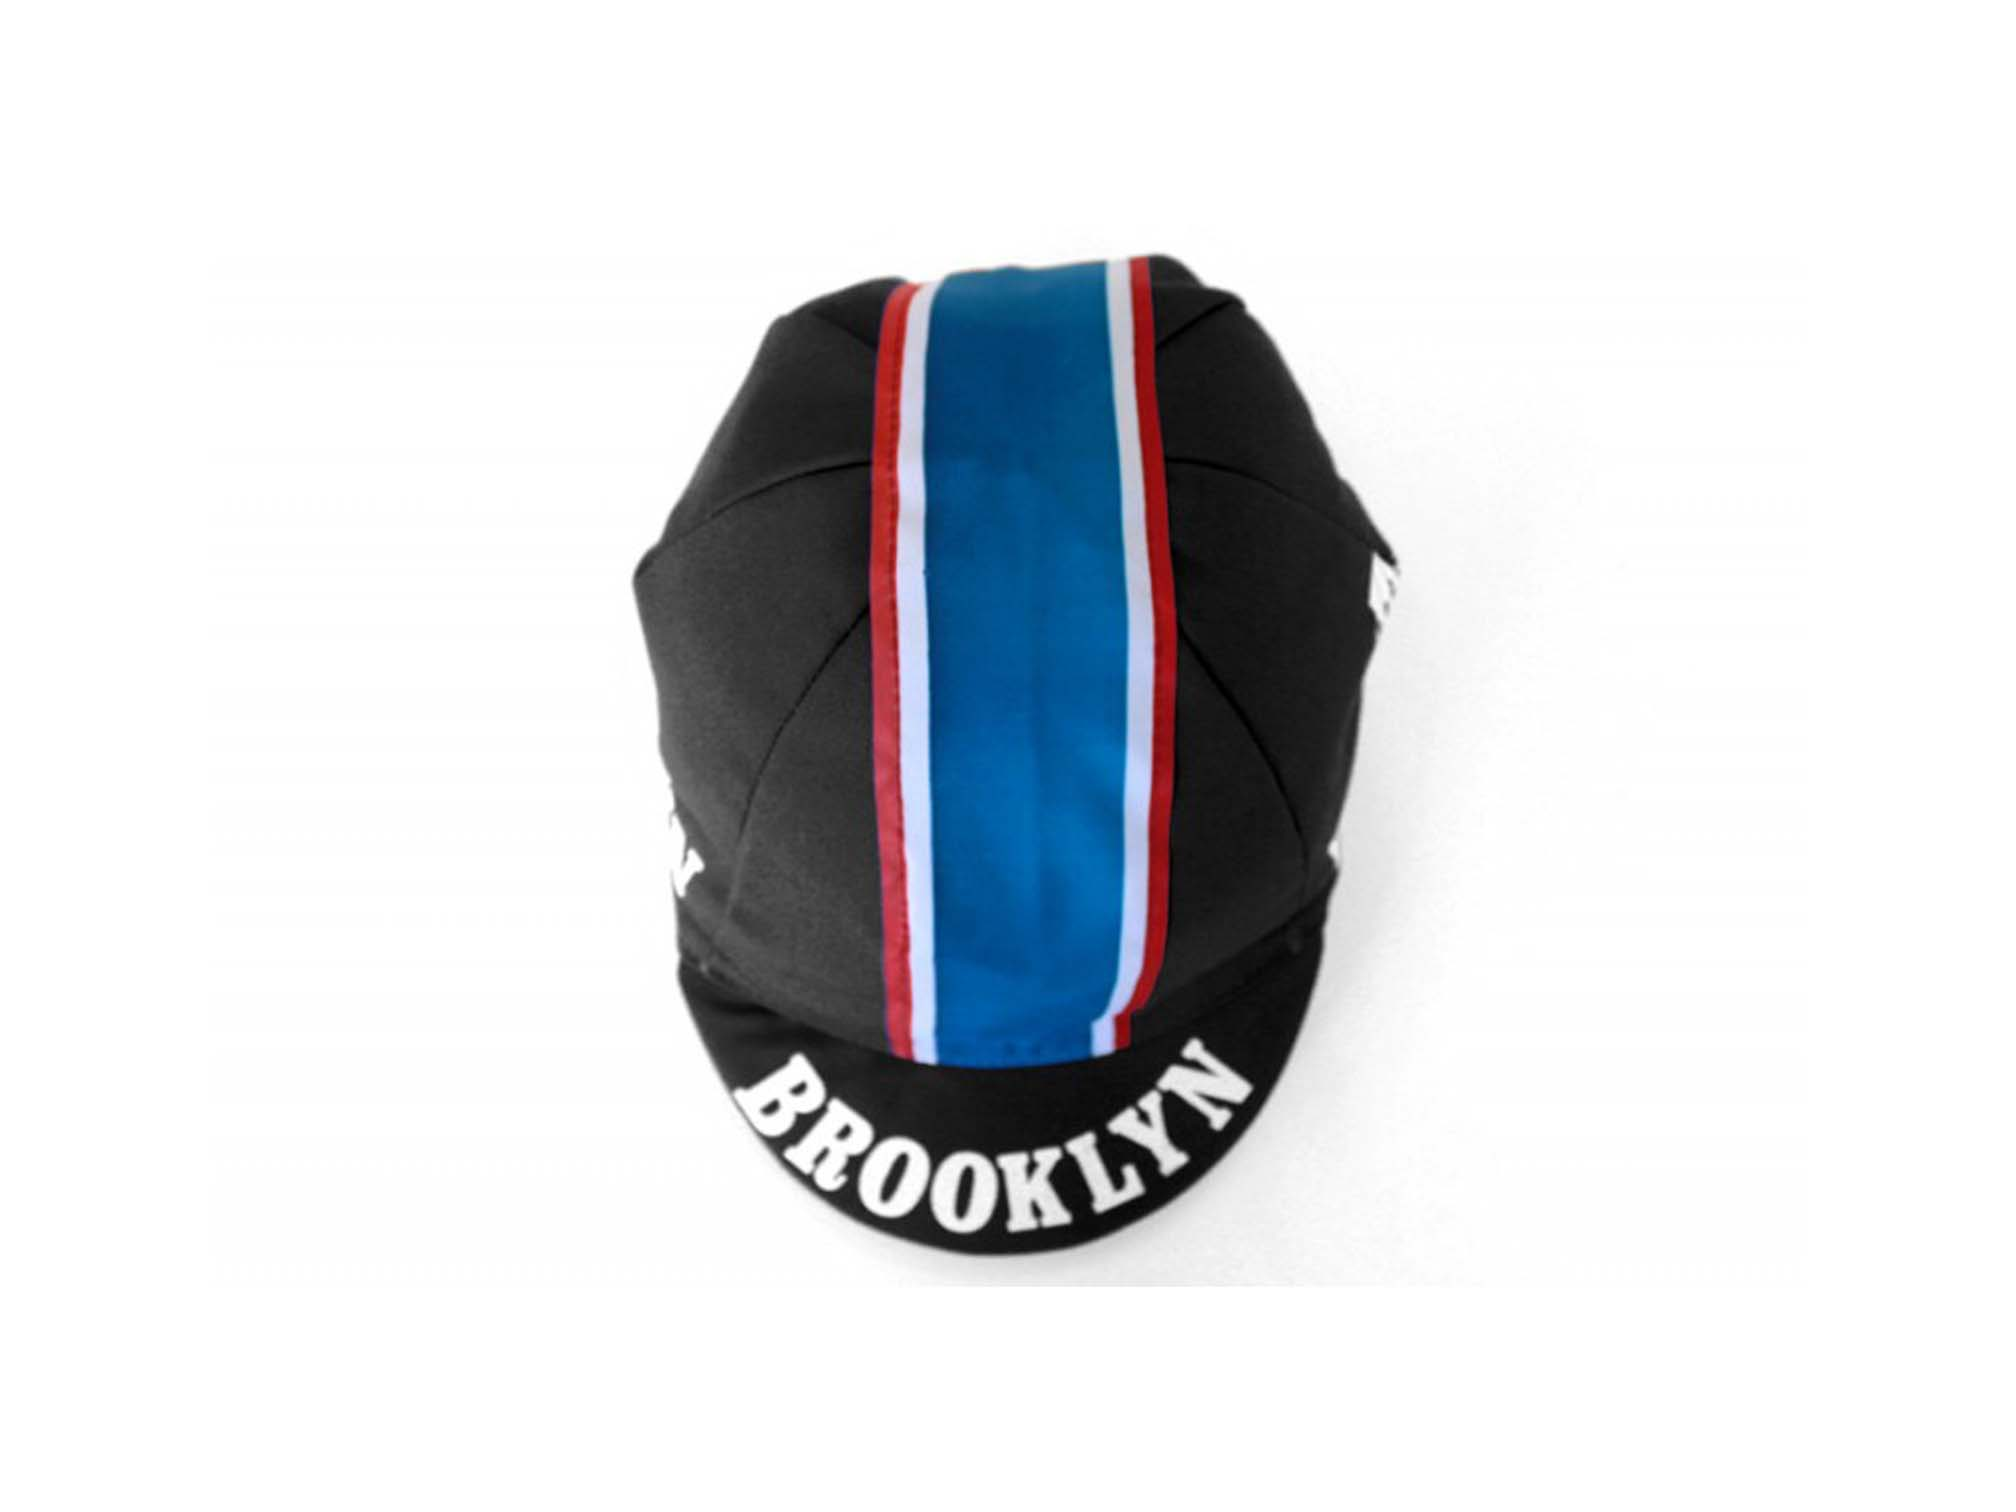 Vintage Brooklyn Cap Black 2cd02b6a05d